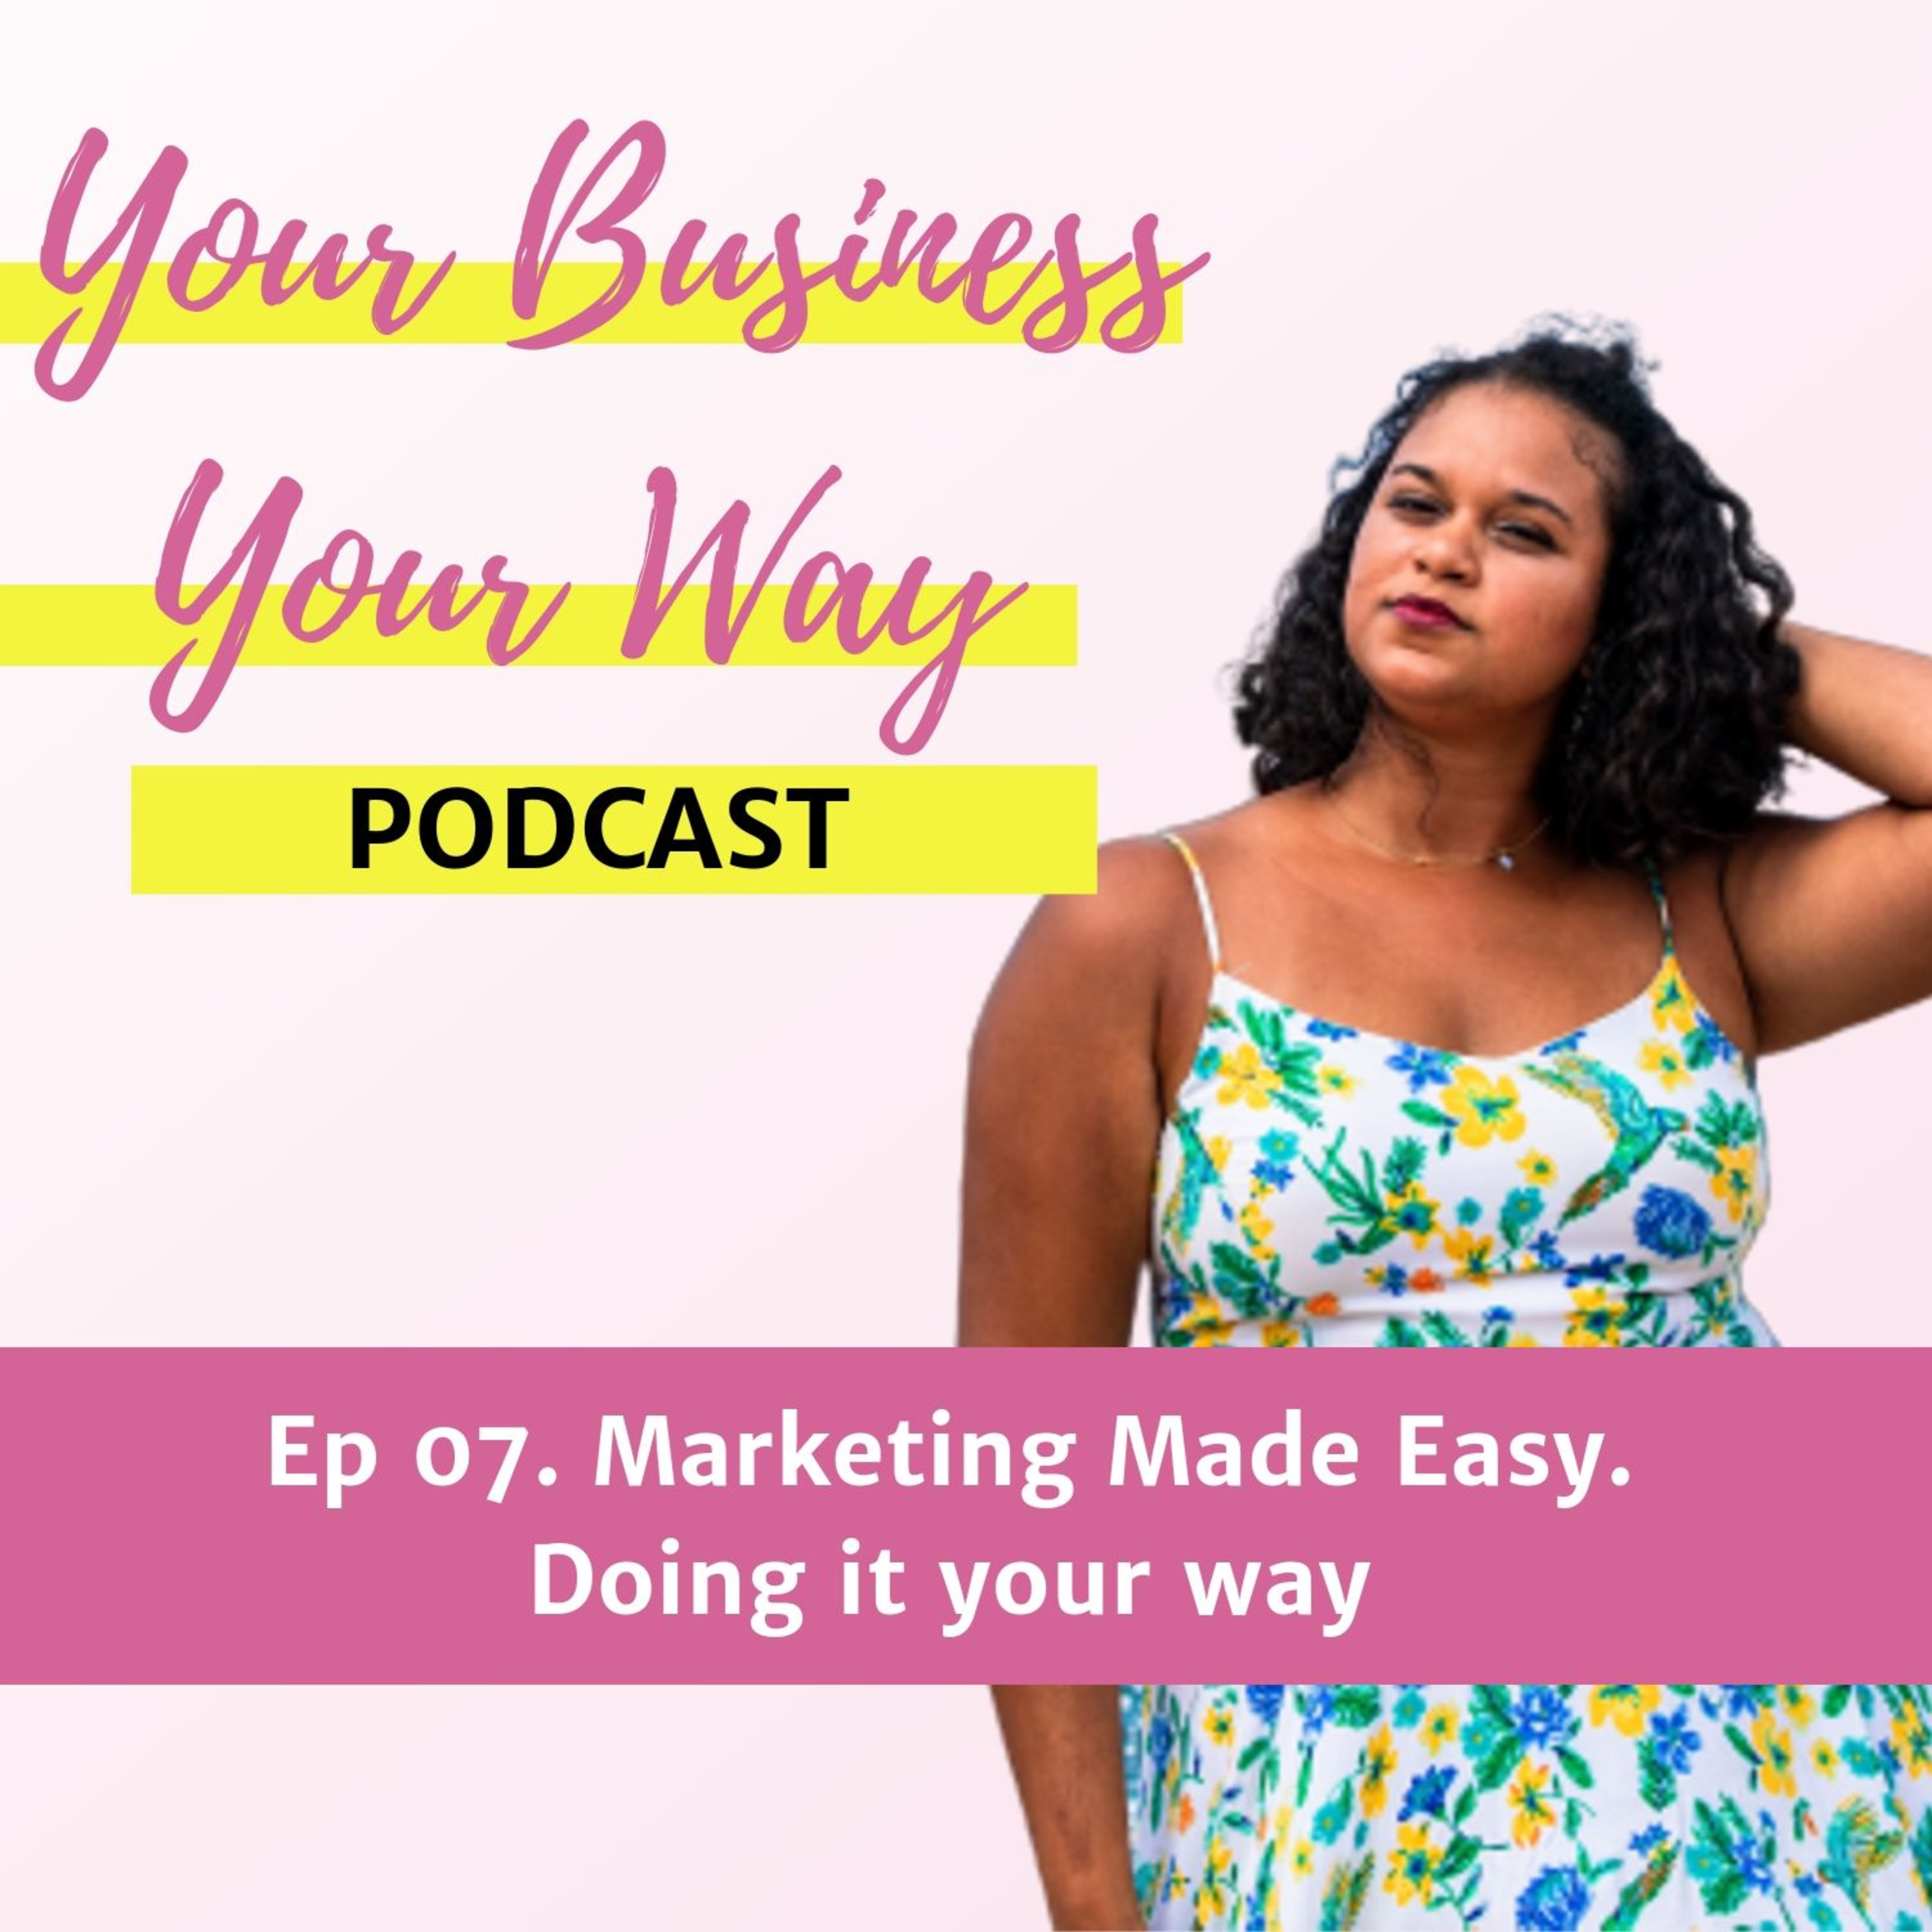 Ep 07. Marketing Made Easy. Doing it your way